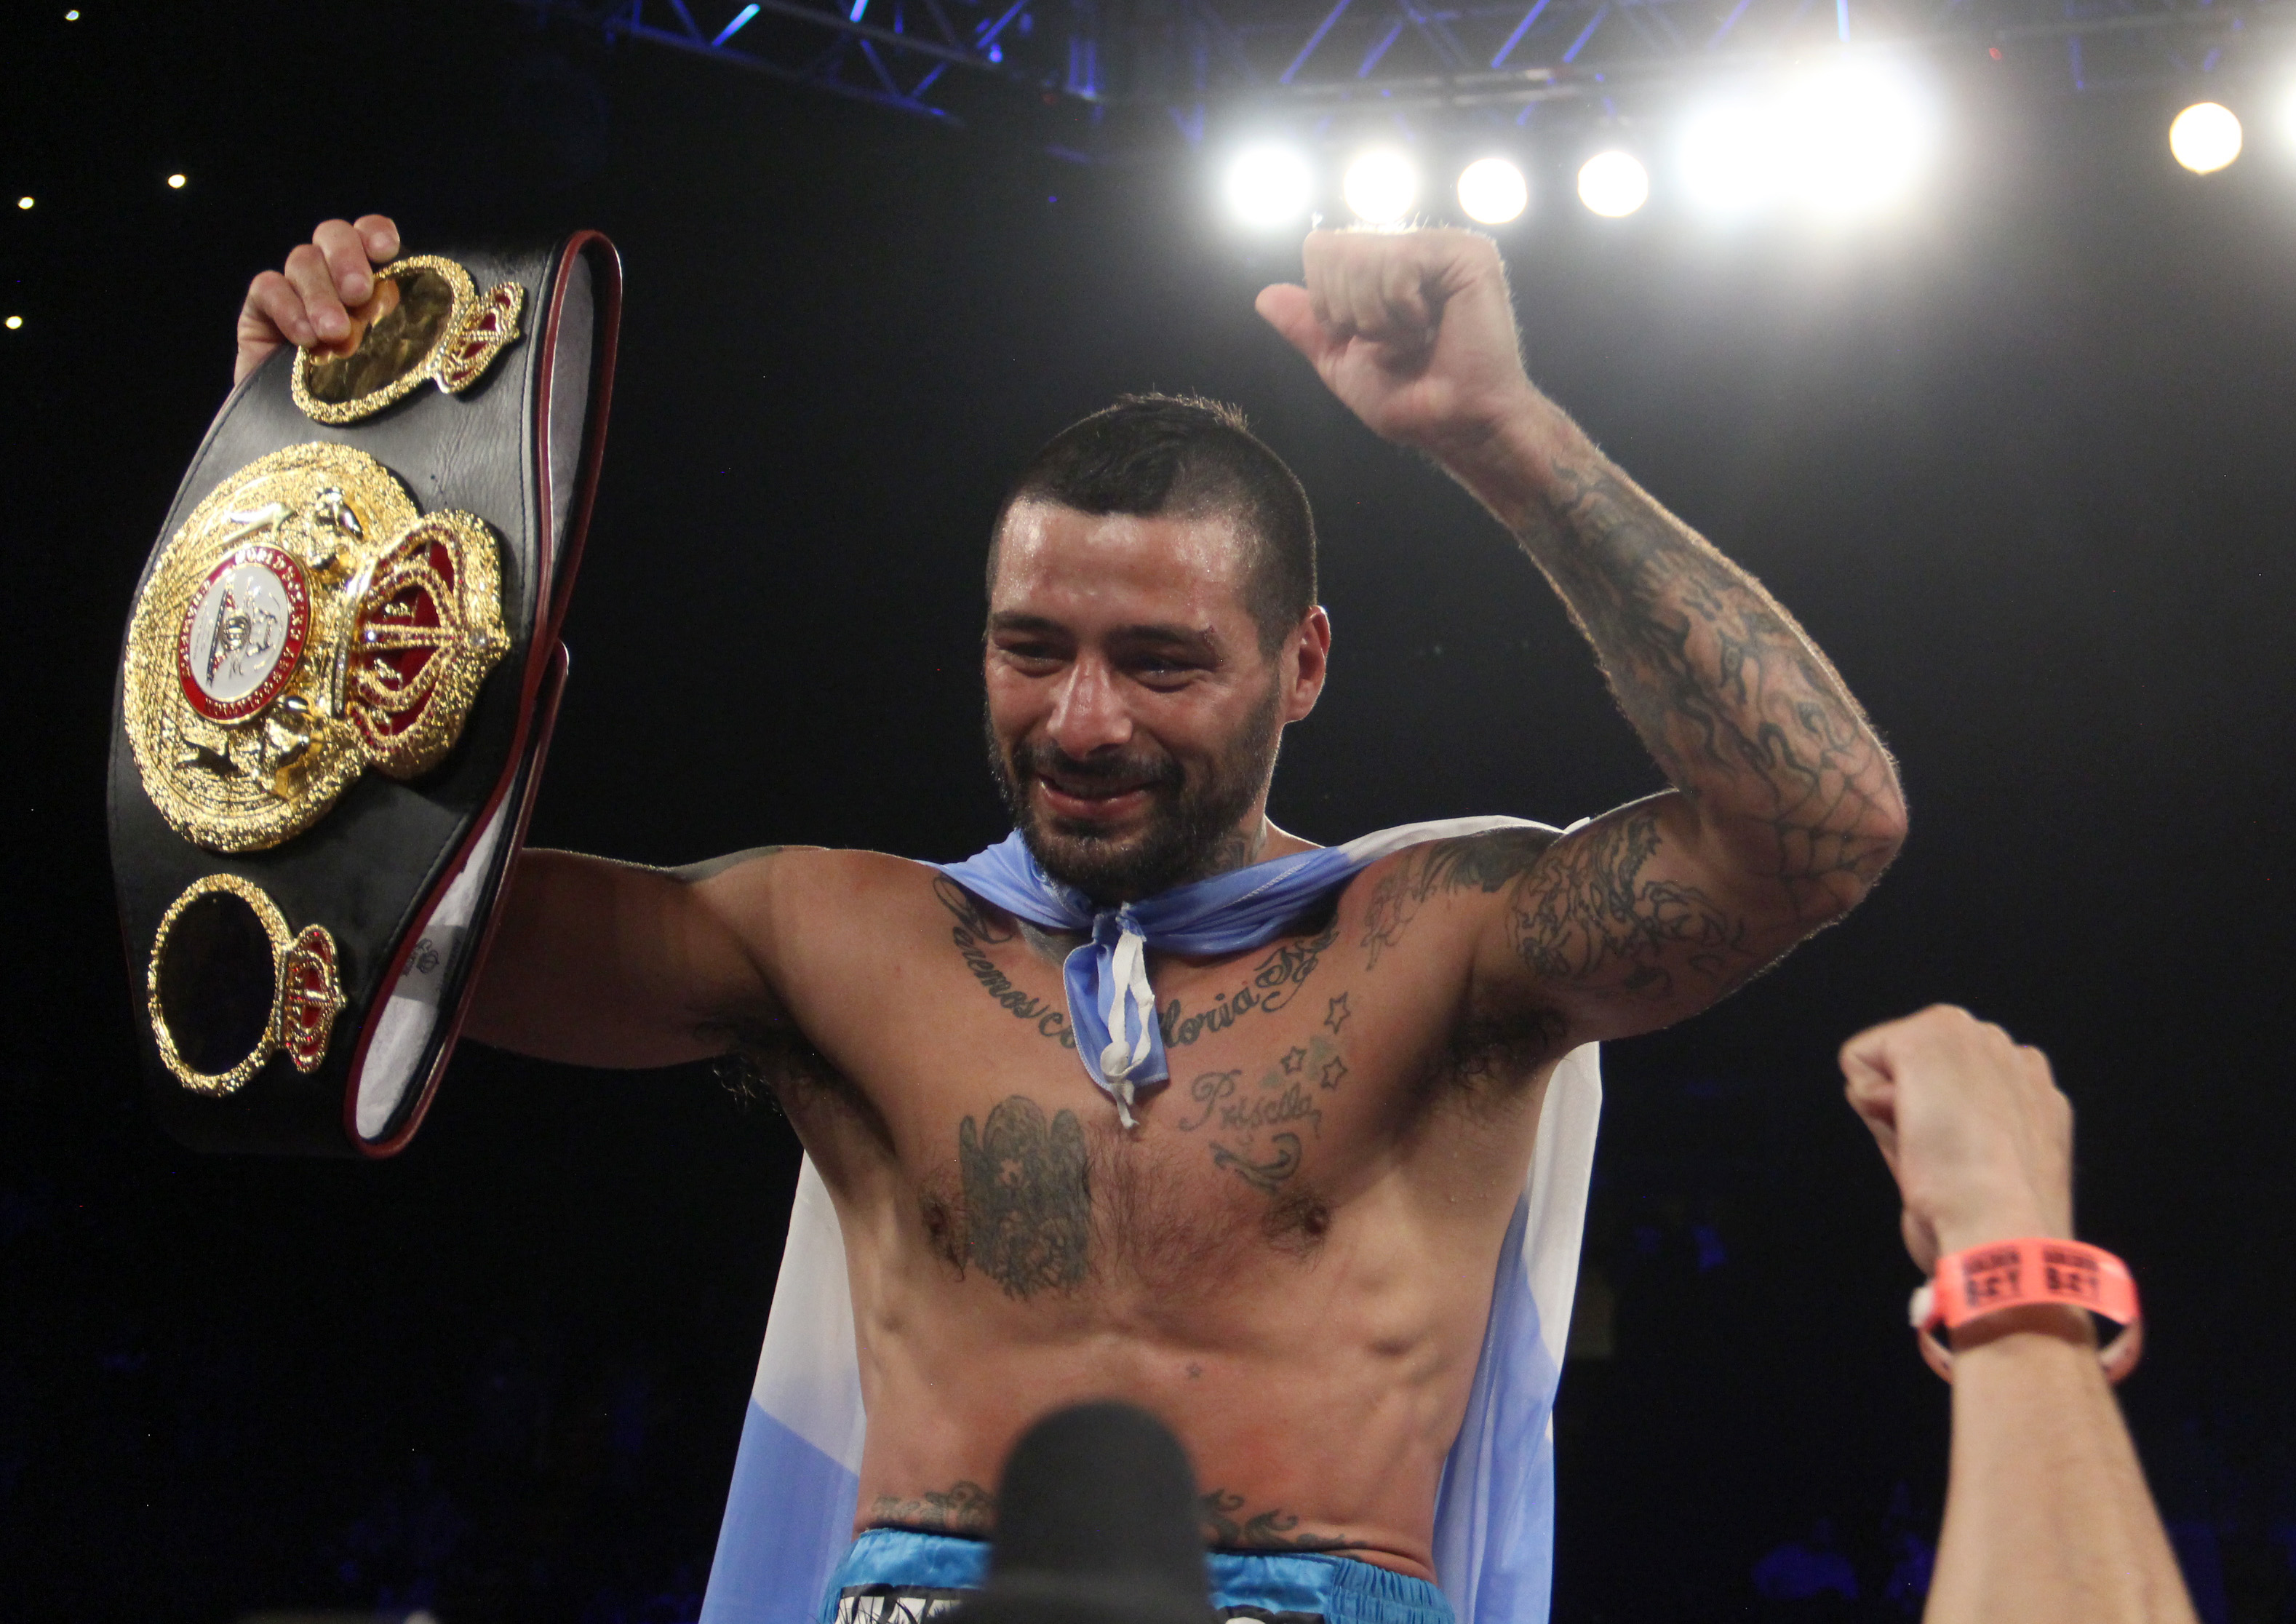 Matthysse knocked out Kiram and is the new WBA Welterweight champion